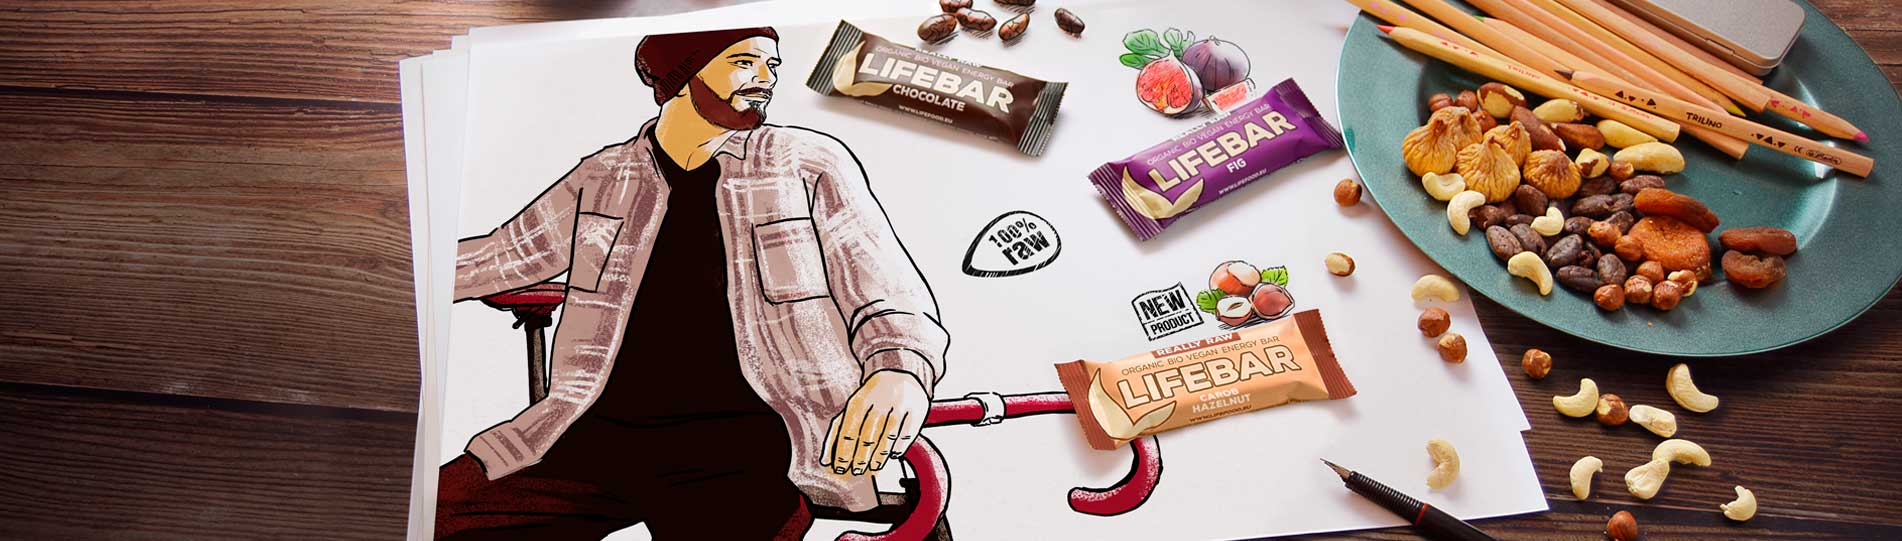 Raw Bars Lifebar